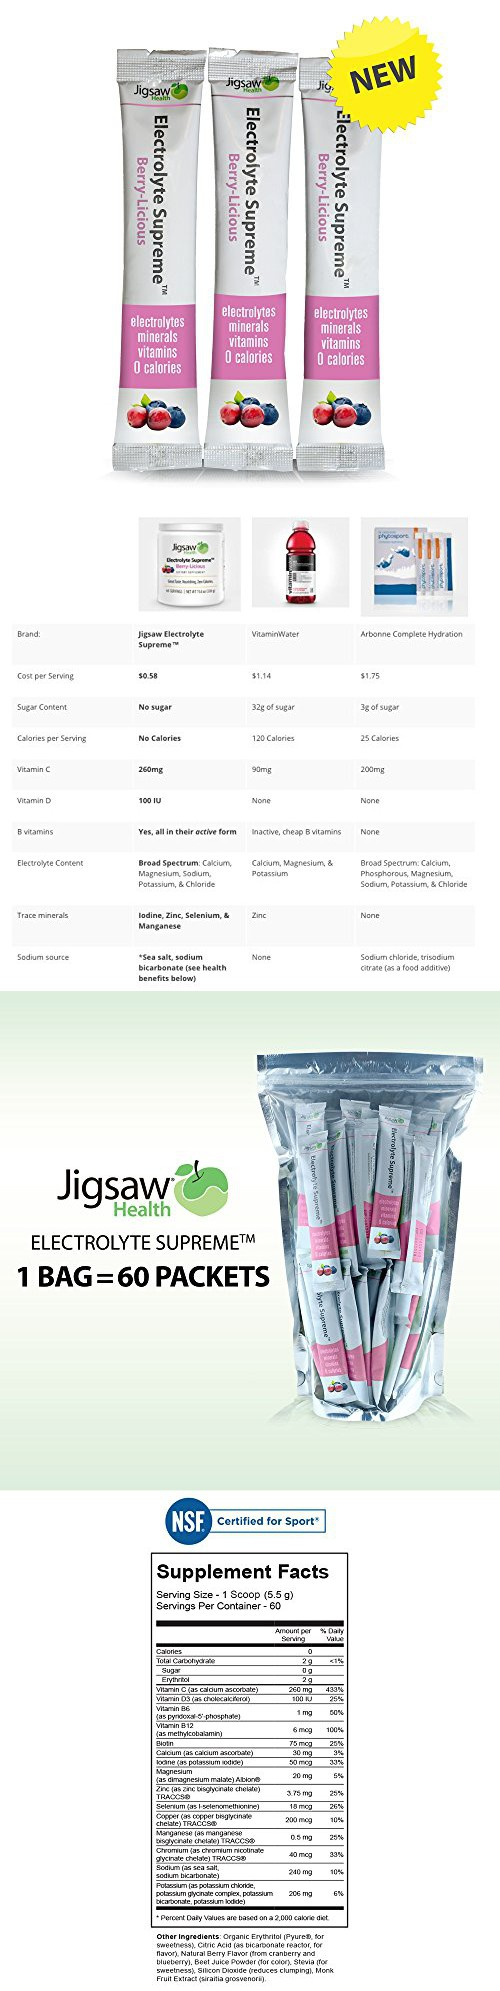 Jigsaw Health Electrolyte Supreme Great Berry Licious Flavor Broad Spectrum Of Electrolytes